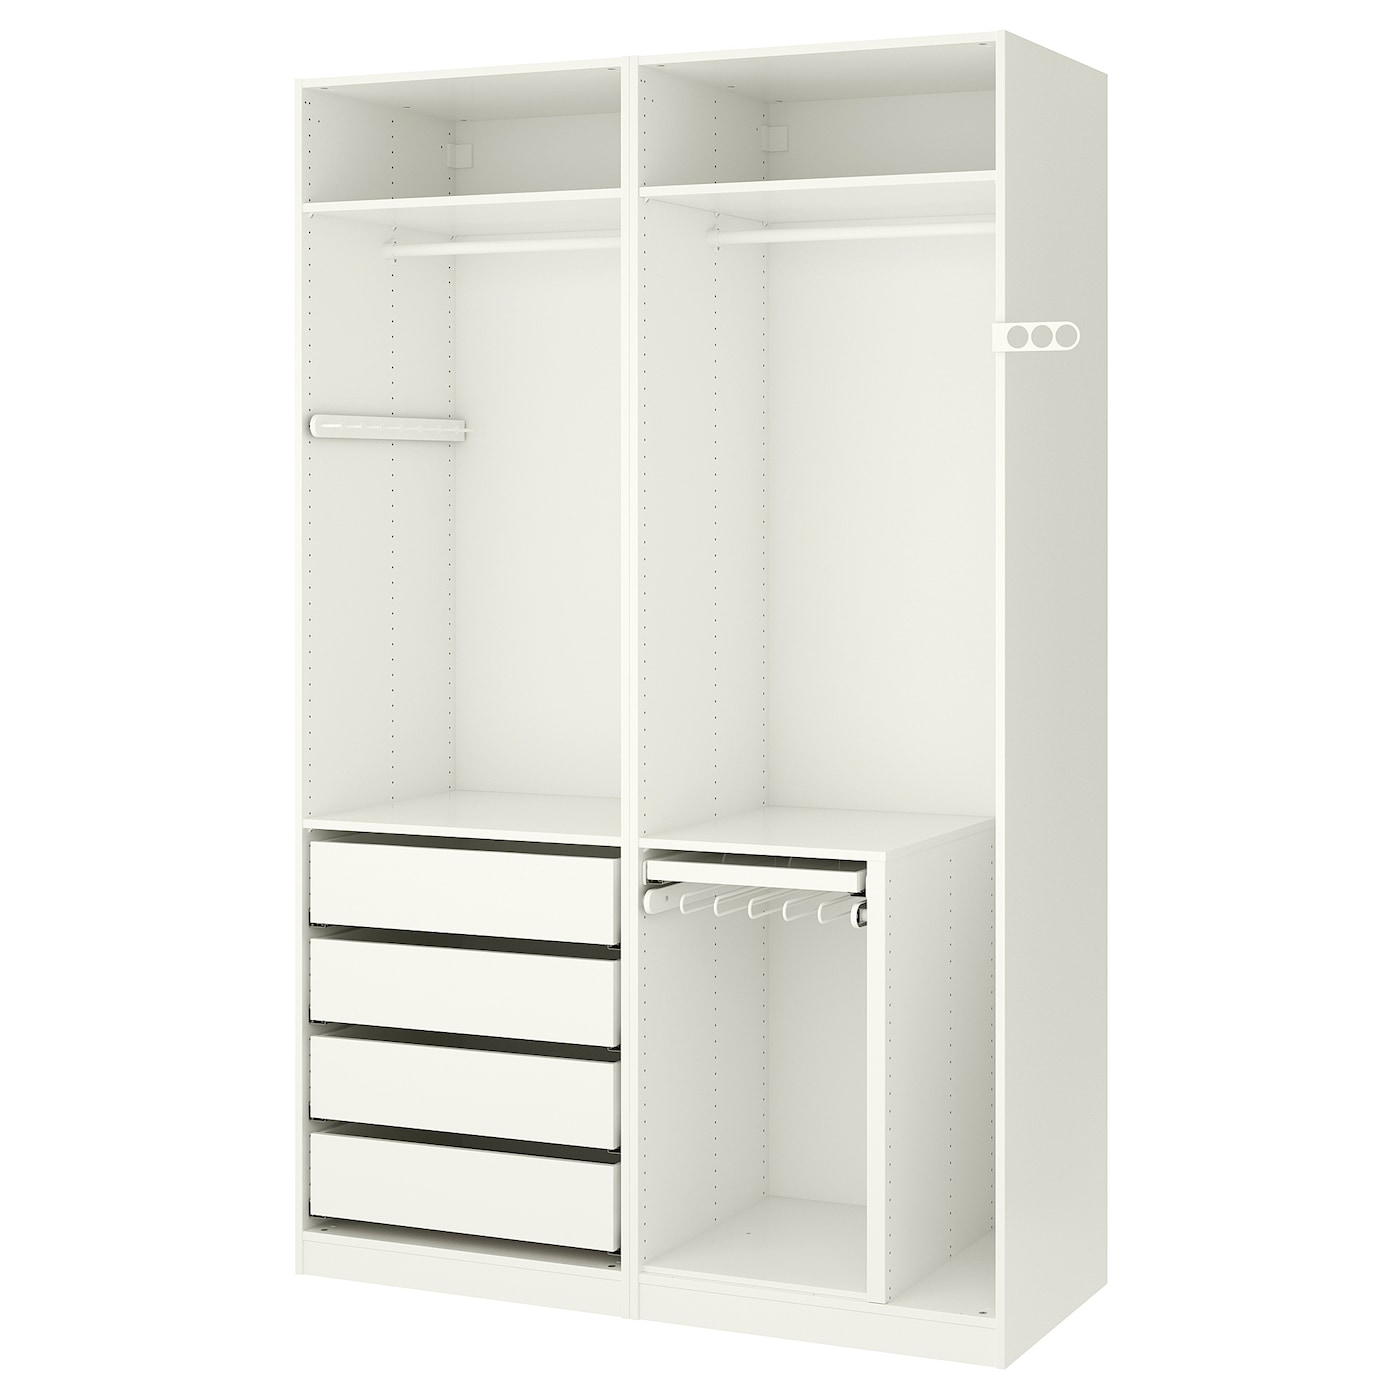 pax wardrobe white 150 x 58 x 236 cm ikea. Black Bedroom Furniture Sets. Home Design Ideas